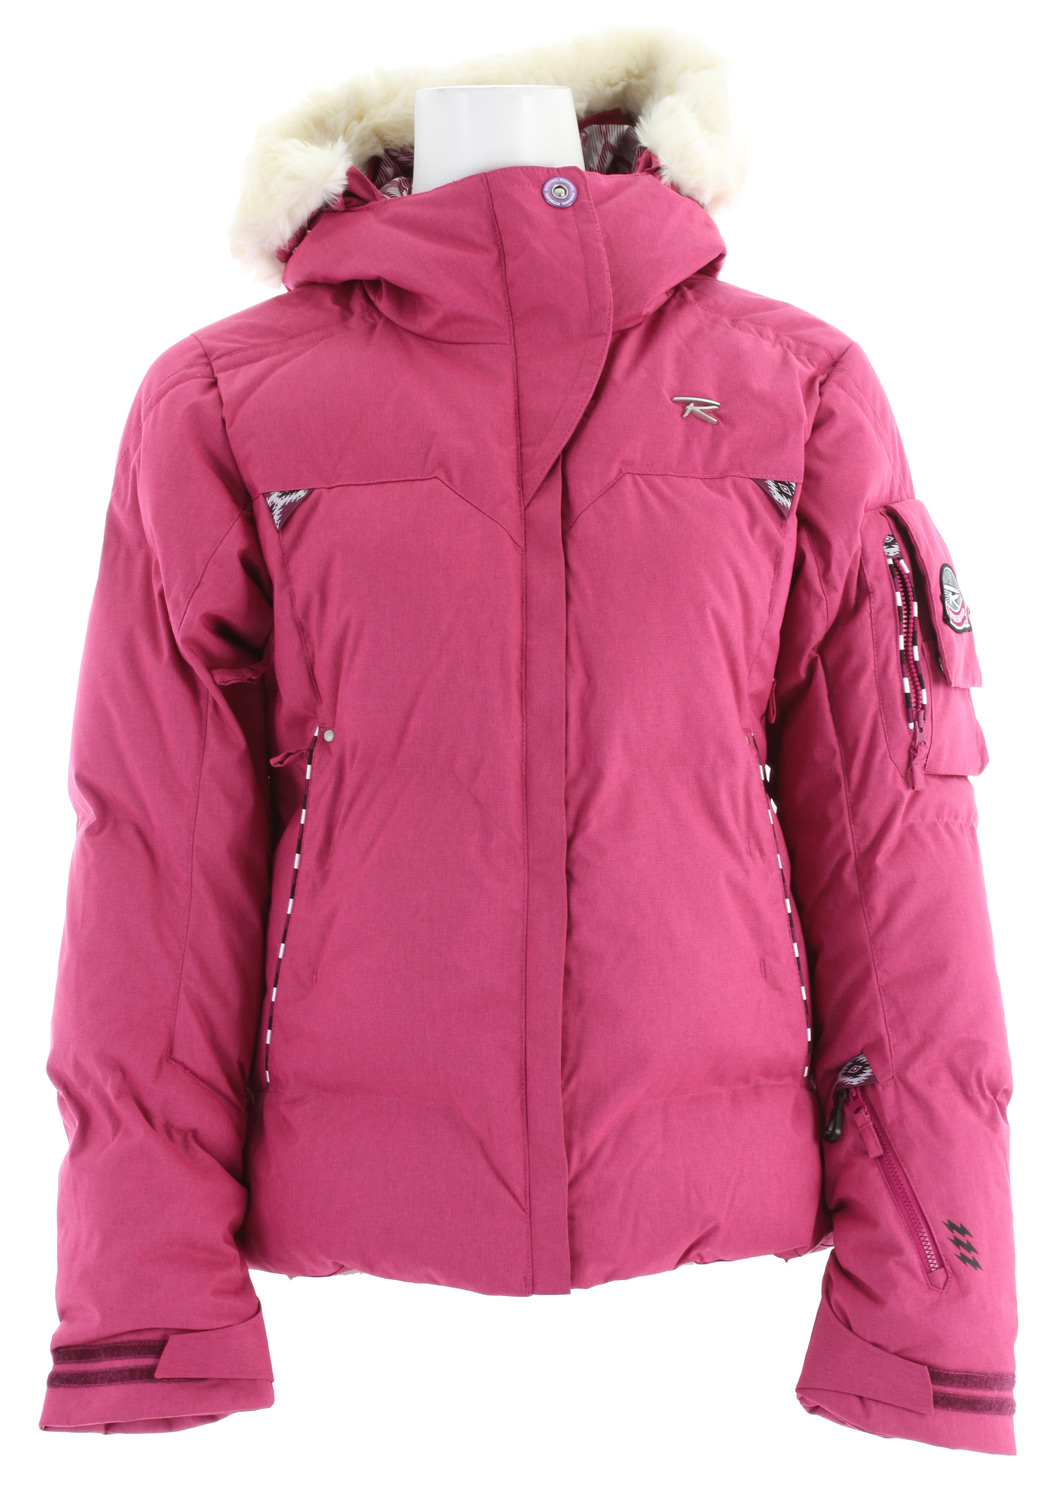 Ski Key Features of the Rossignol Sky Polydown Ski Jacket: 20,000mm Waterproof 20,000gm2 Breathable Heather Weave 100% polyester Weight: 160g/ m2 Finish: Lamination 2L DWR Lining: Polydown Fixed hood - removable fake fur around the hood Removable powder skirt Aligaiter system to attach the jacket to the pant Lycra cuffs with thumb loop Vent zip Elastic cord on bottom Stored pockets Key holder Goggle wiper Whistle in sleeve pocket Ski pass pocket 63cm/ 24.8in center back length - $238.95